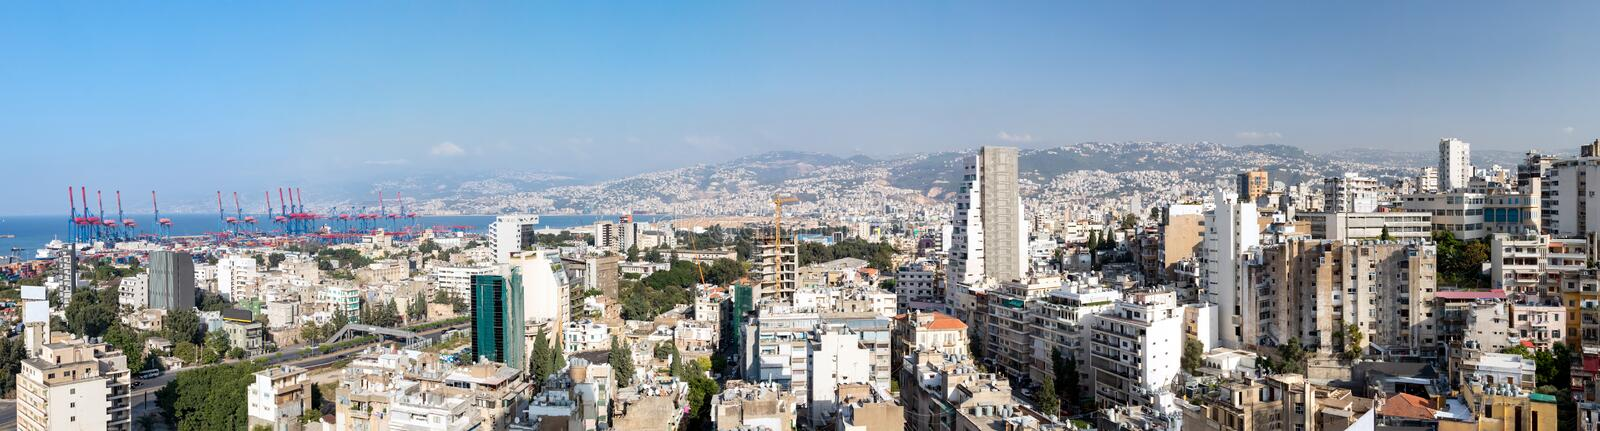 Beirut, Lebanon - Panoramic view of the historic city skyline royalty free stock photo